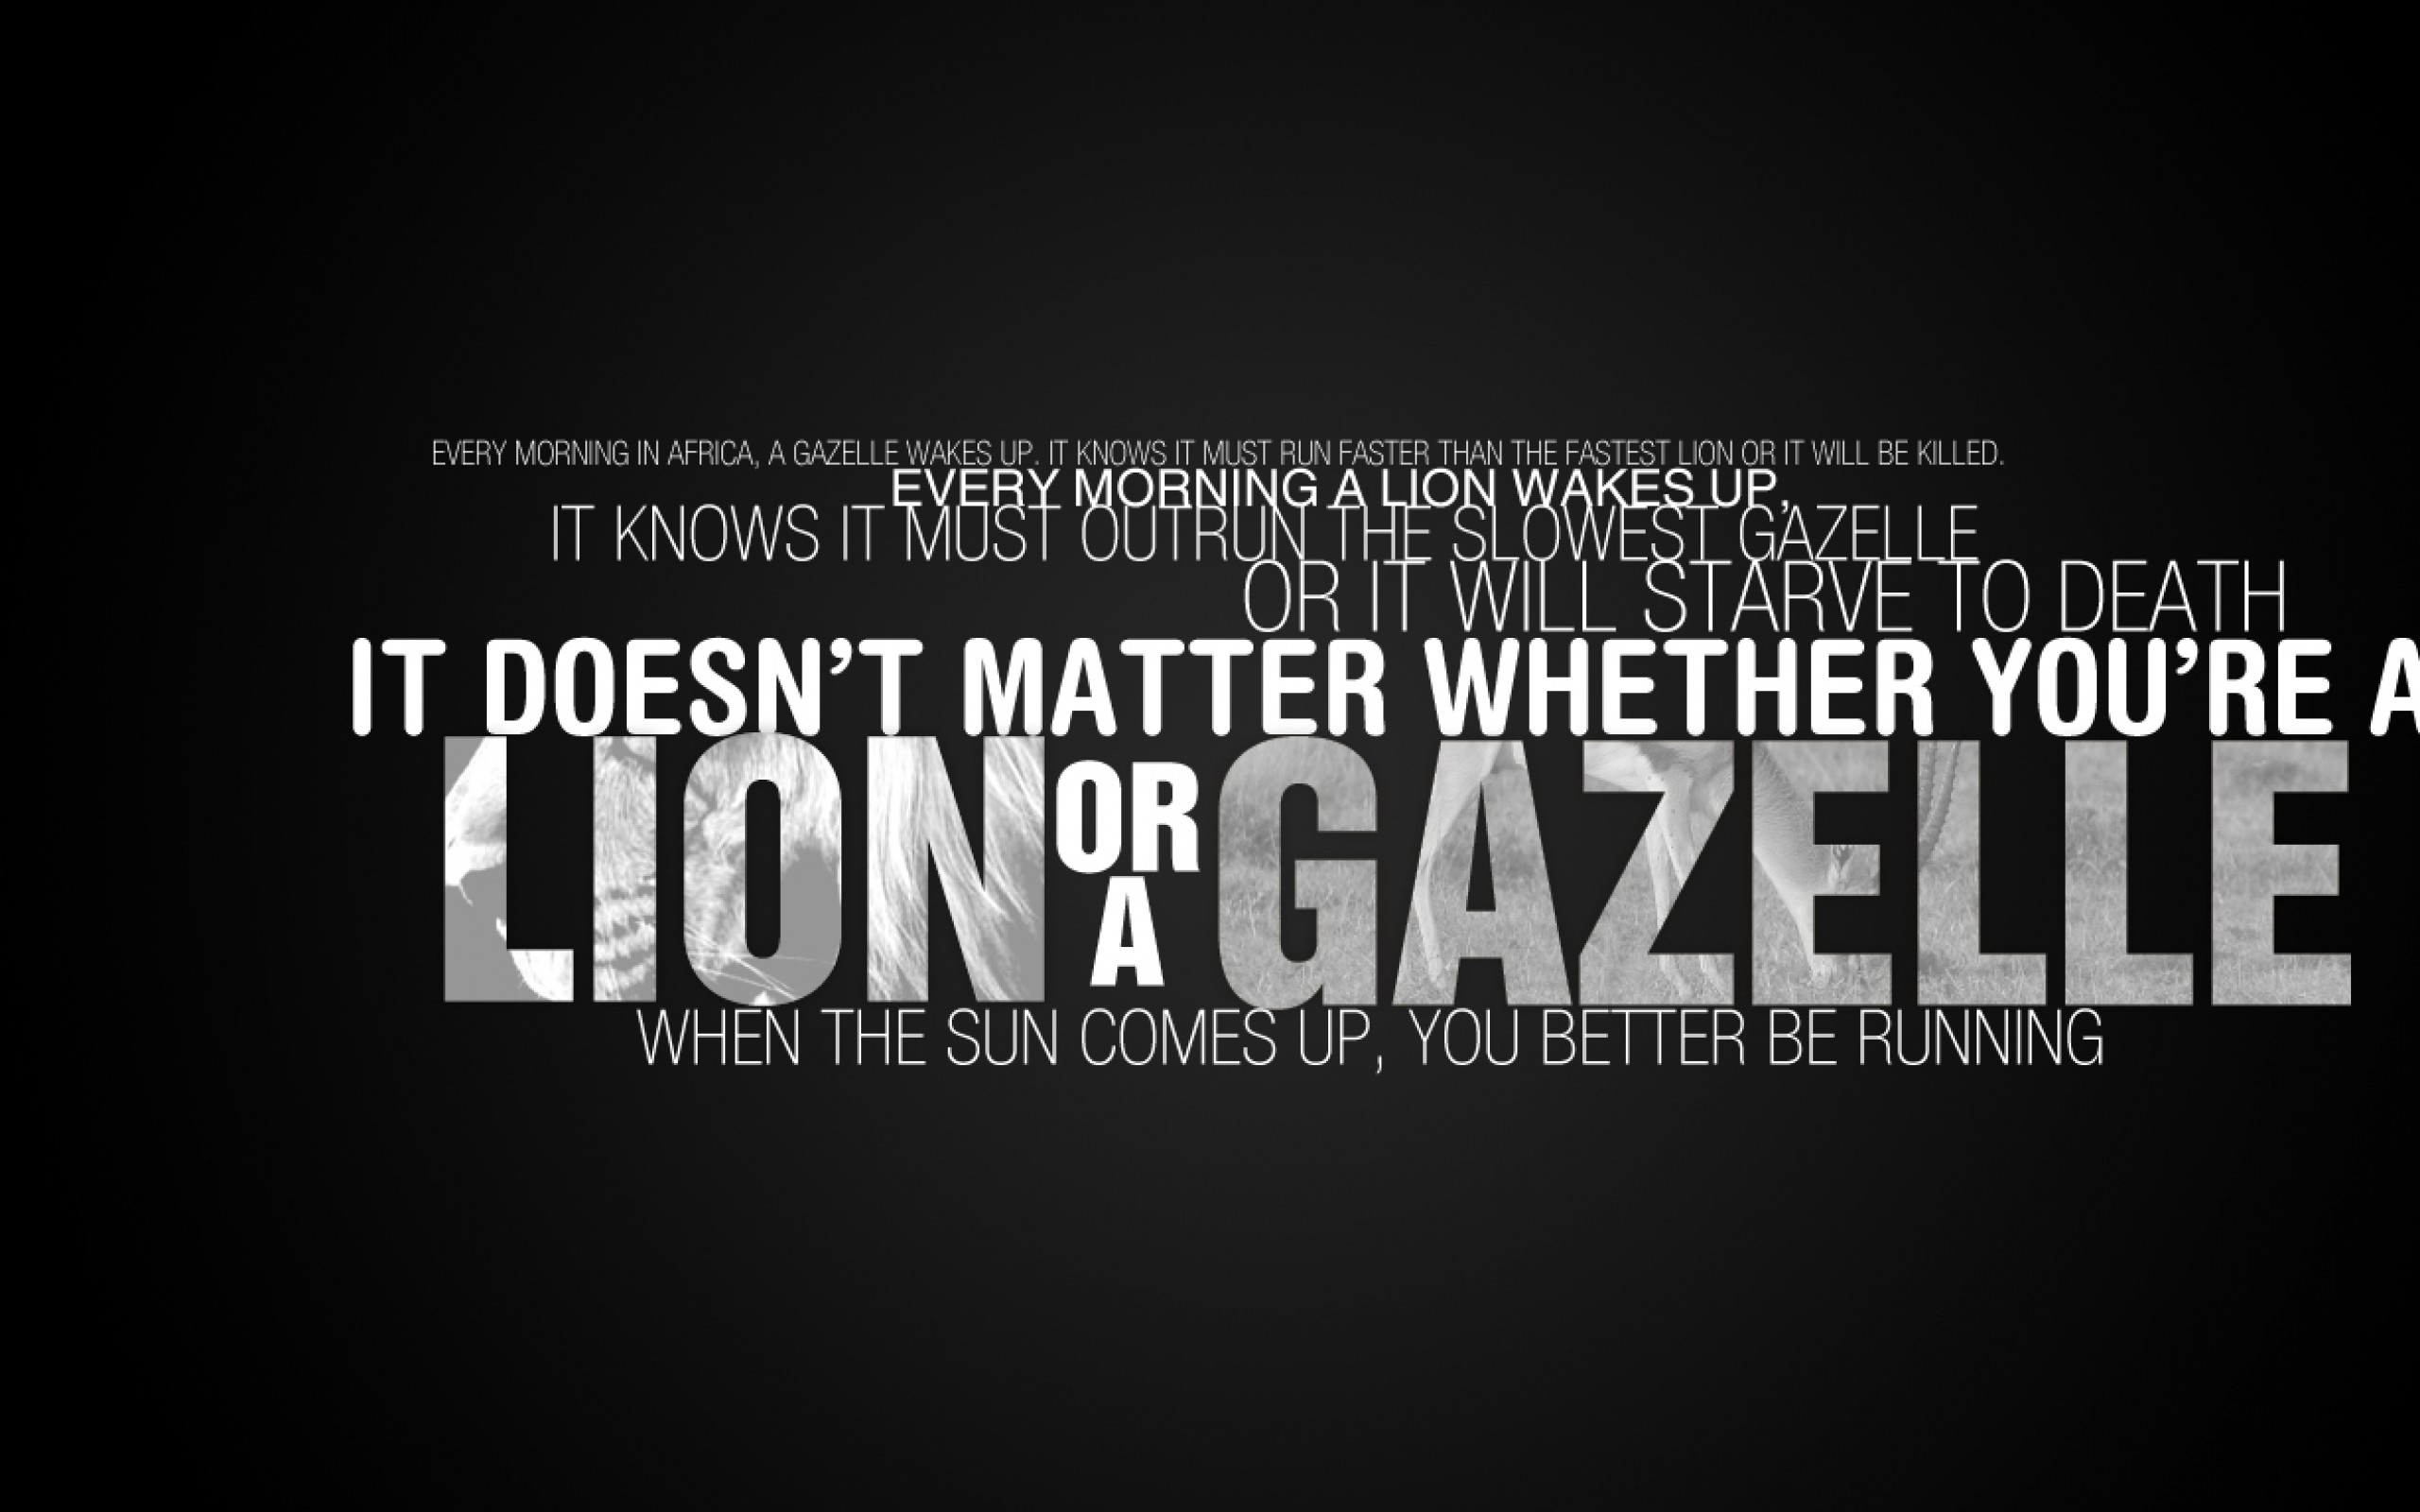 Animal pak quotes wallpaper 55 images - Animal pak motivational quotes ...